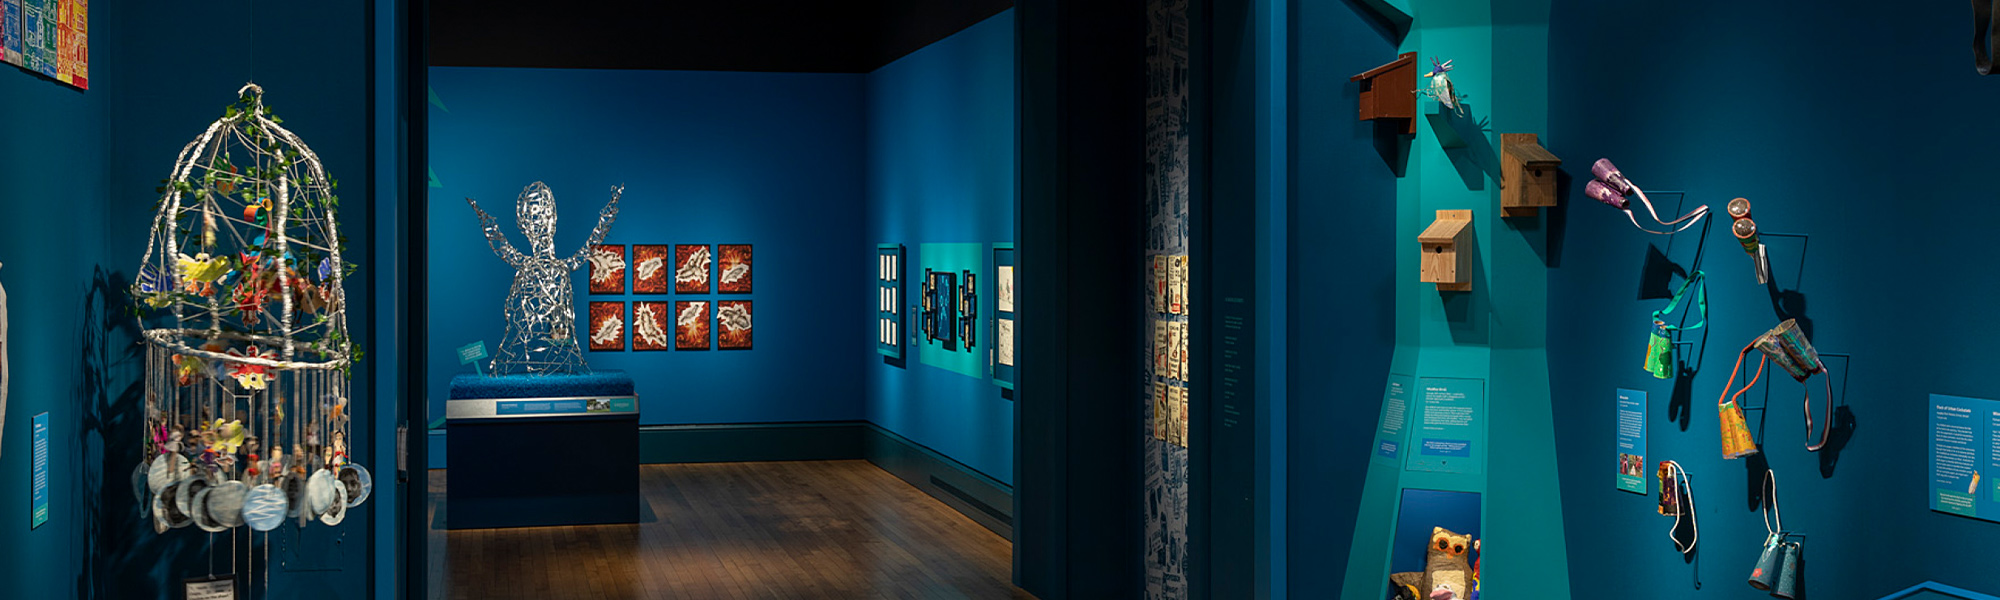 Exhibition with blue walls